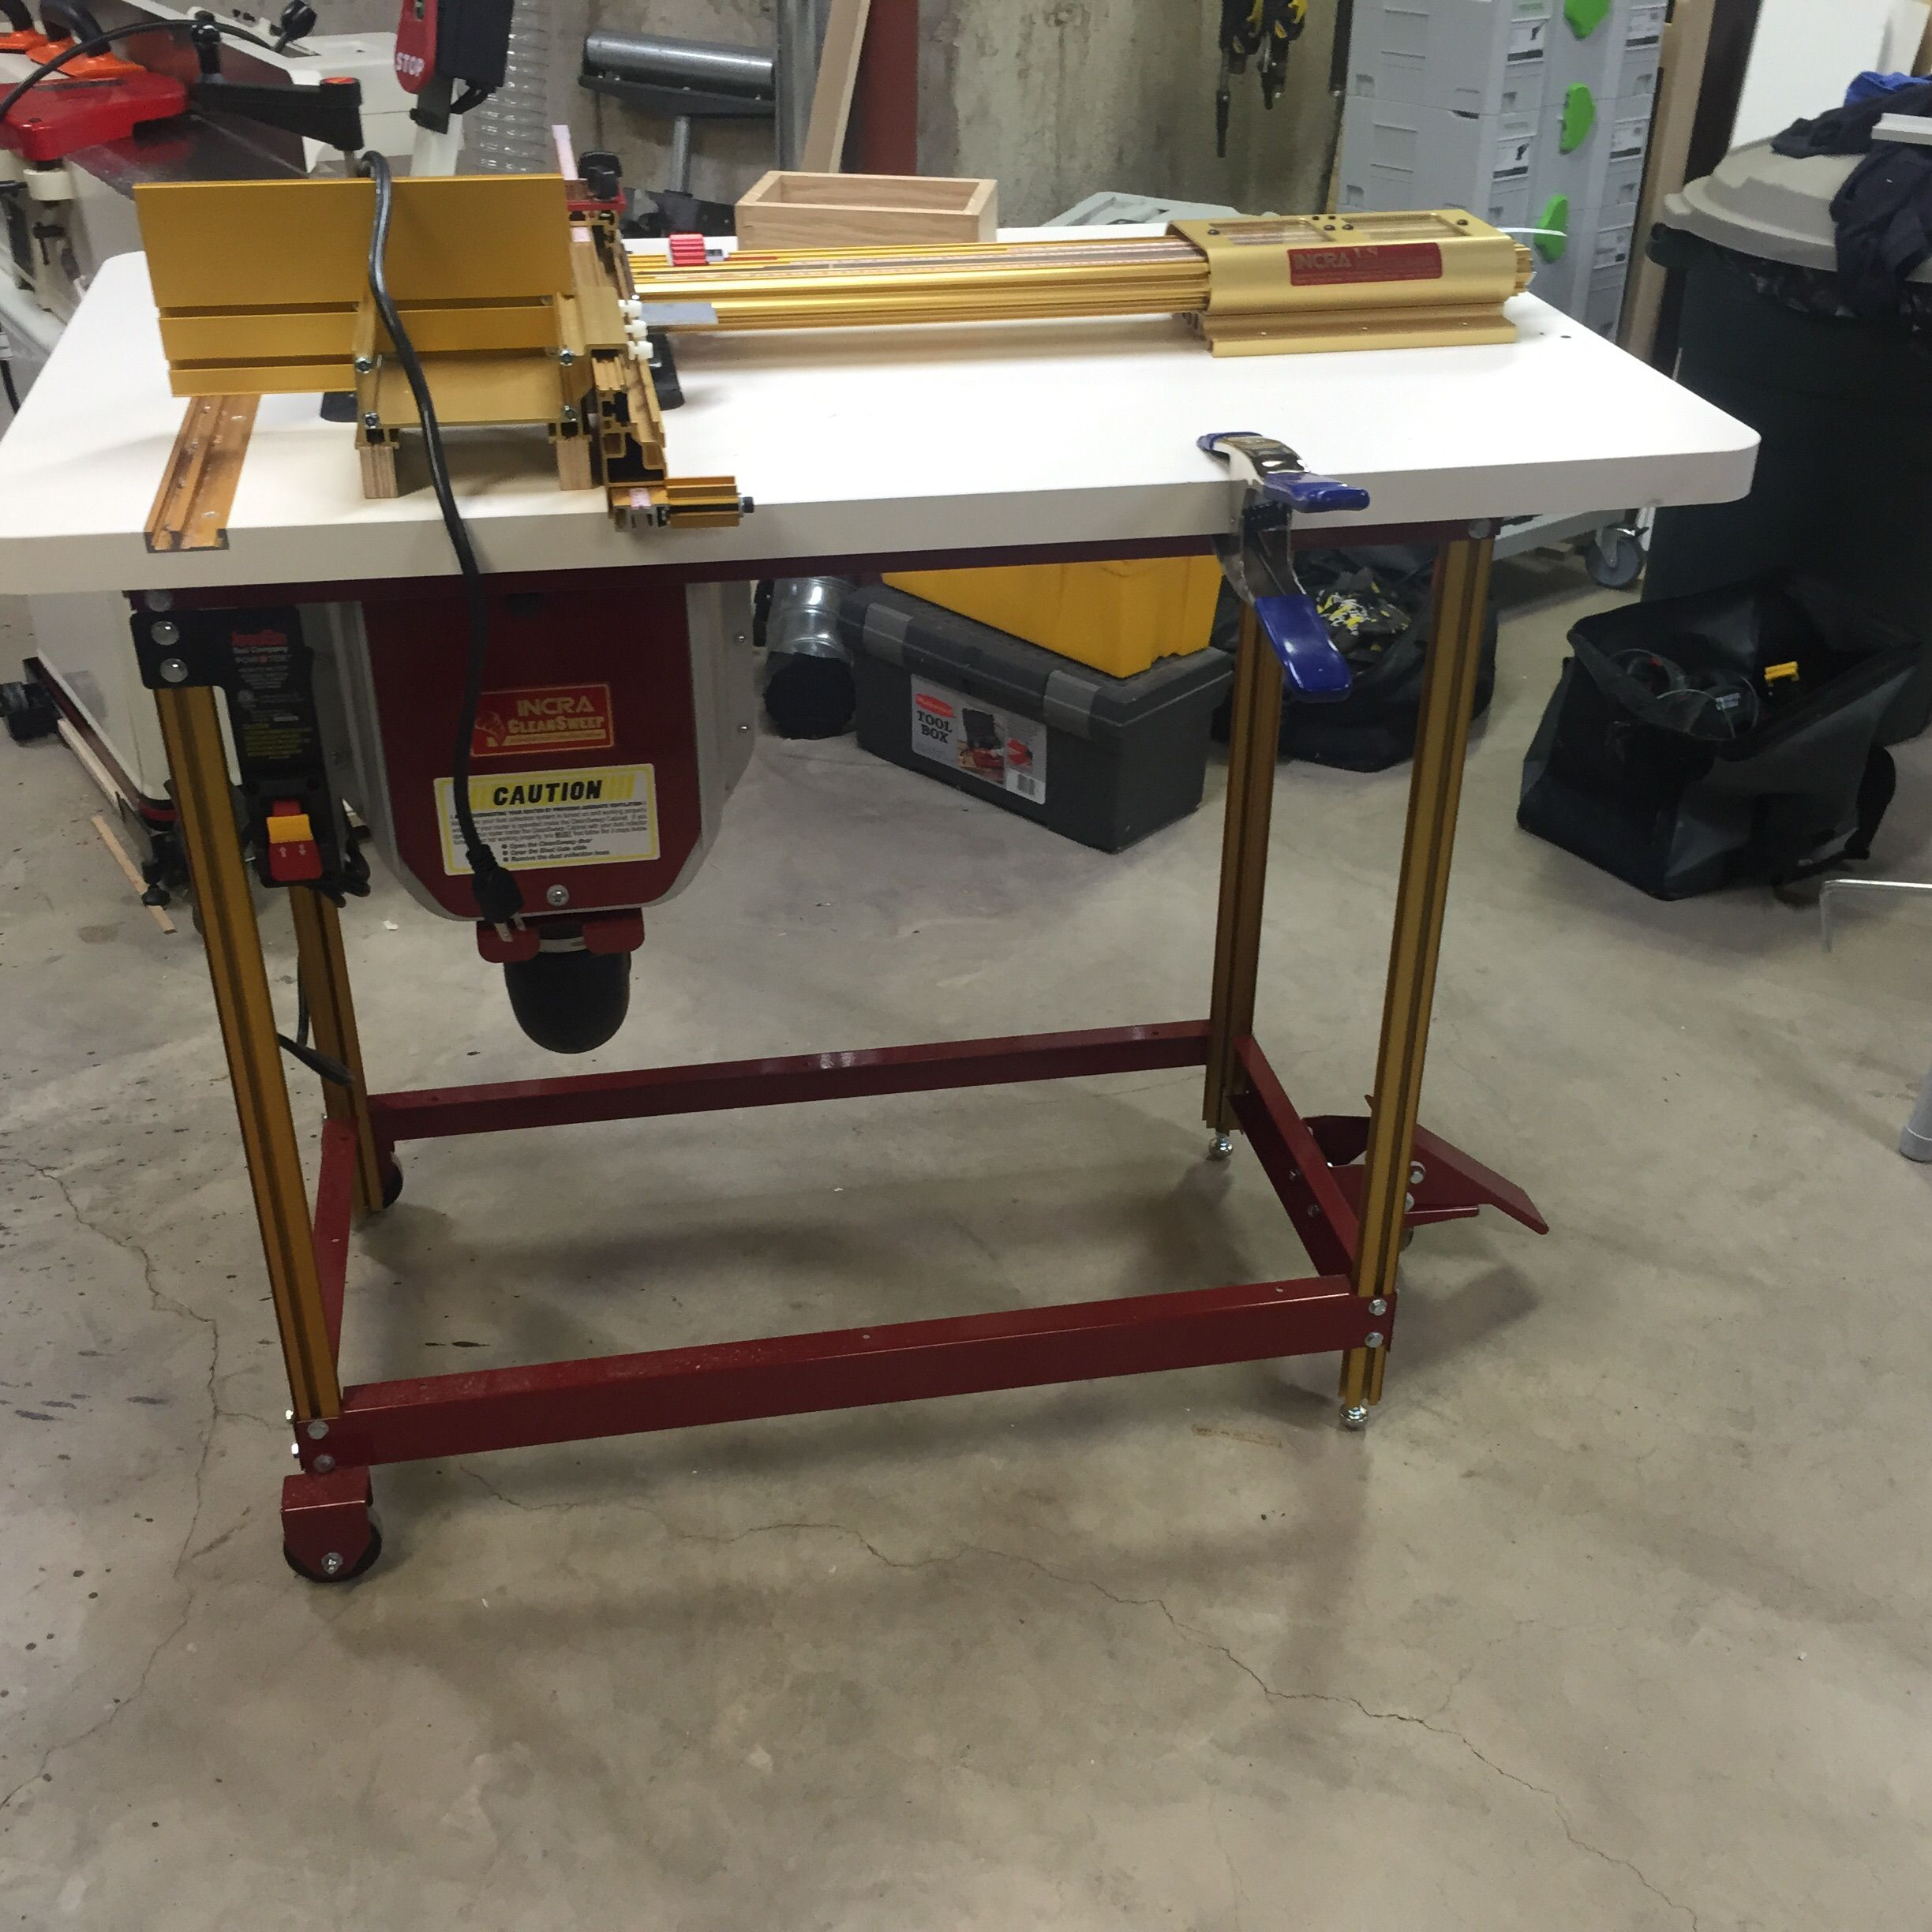 Image result for using incra table saw fence for dedicated router image result for using incra table saw fence for dedicated router table greentooth Choice Image